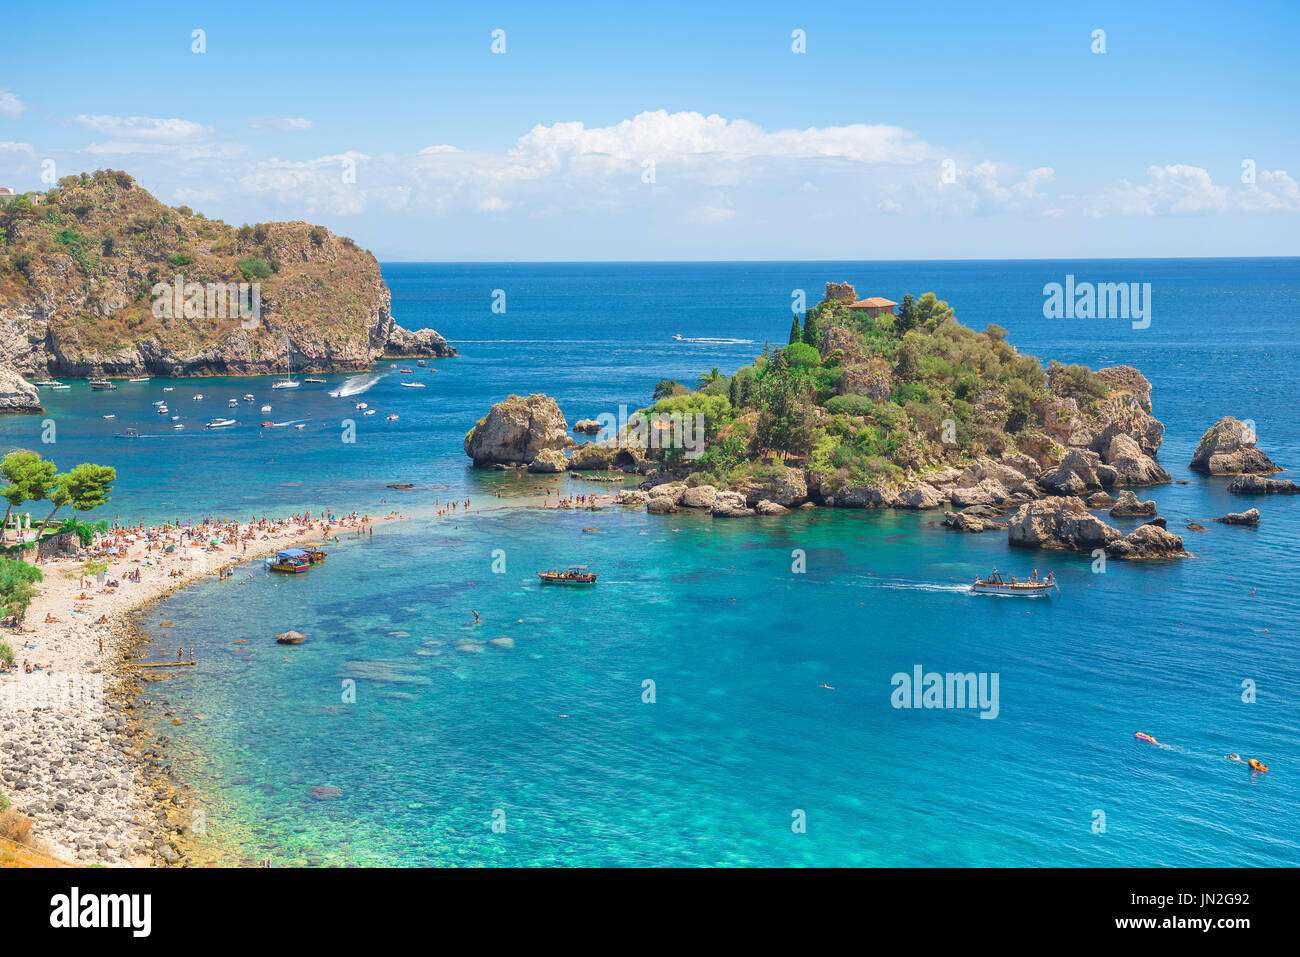 Isola Bella Sicily, the beach at Mazzaro near Taormina, Sicily, showing the small island known as Isola Bella - beautiful island. - Stock Image